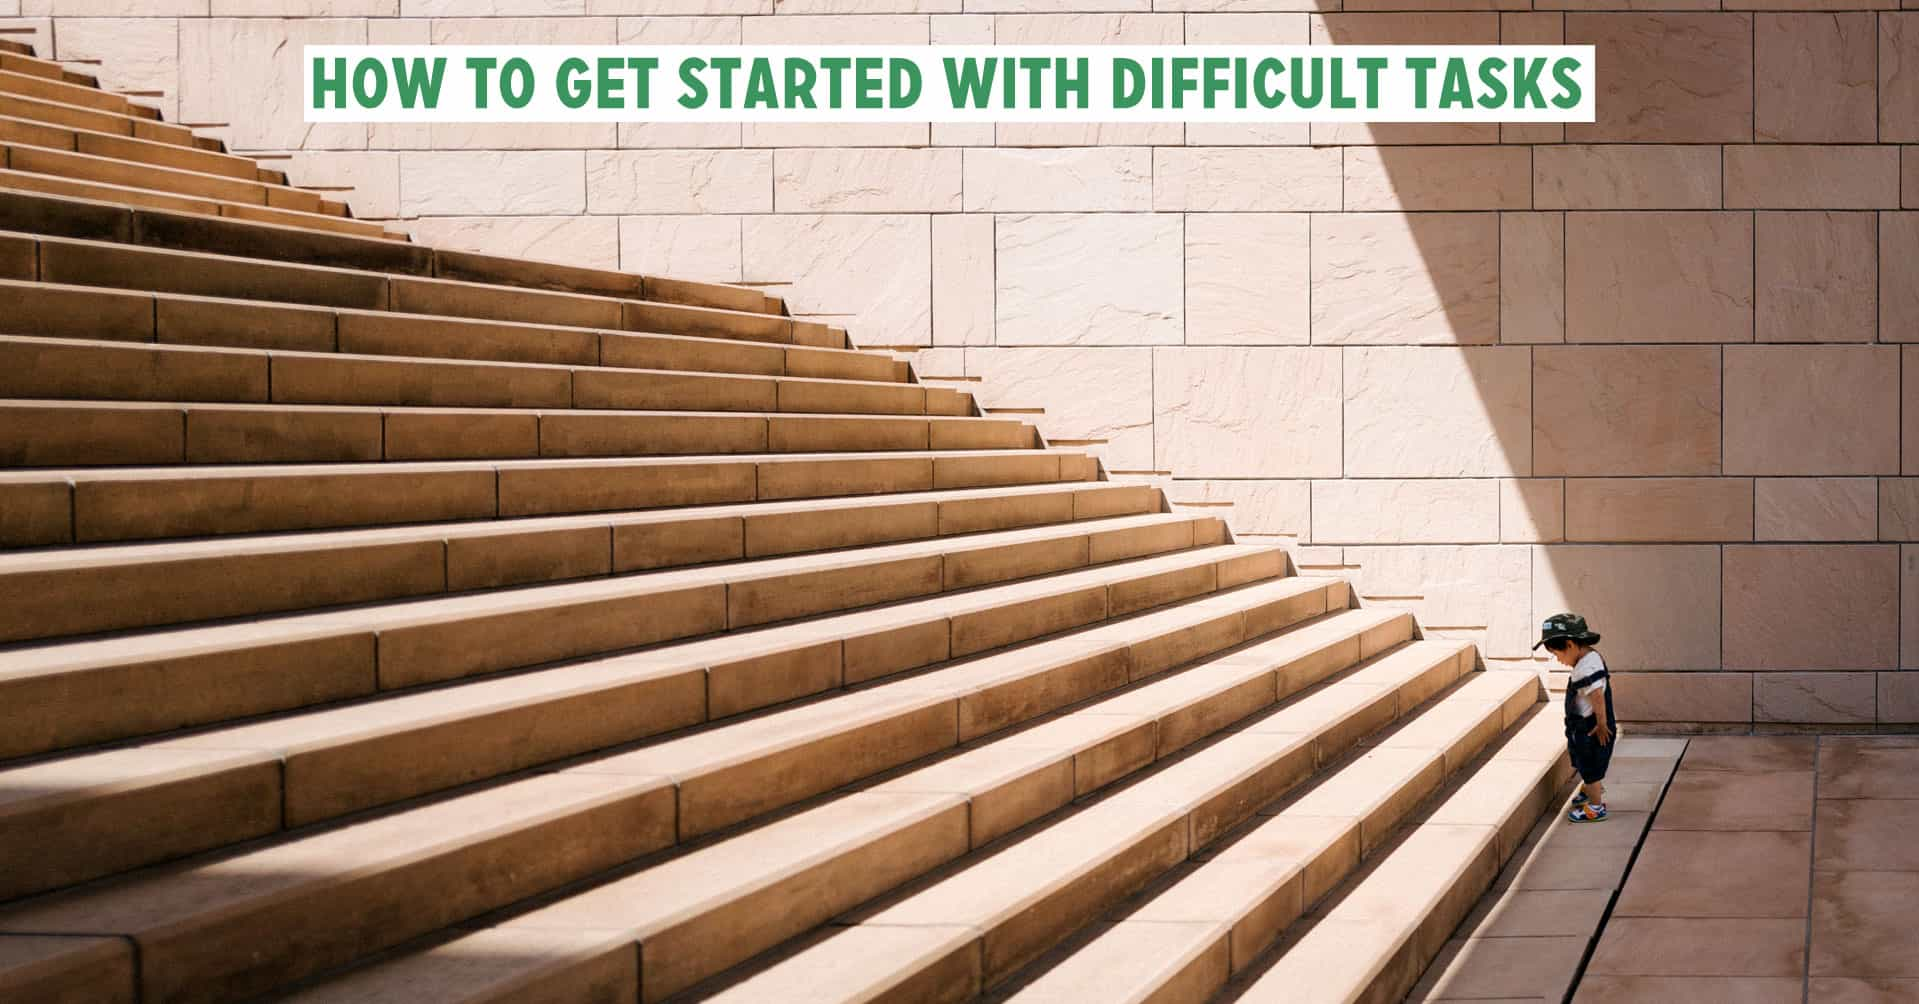 How to get started with difficult tasks